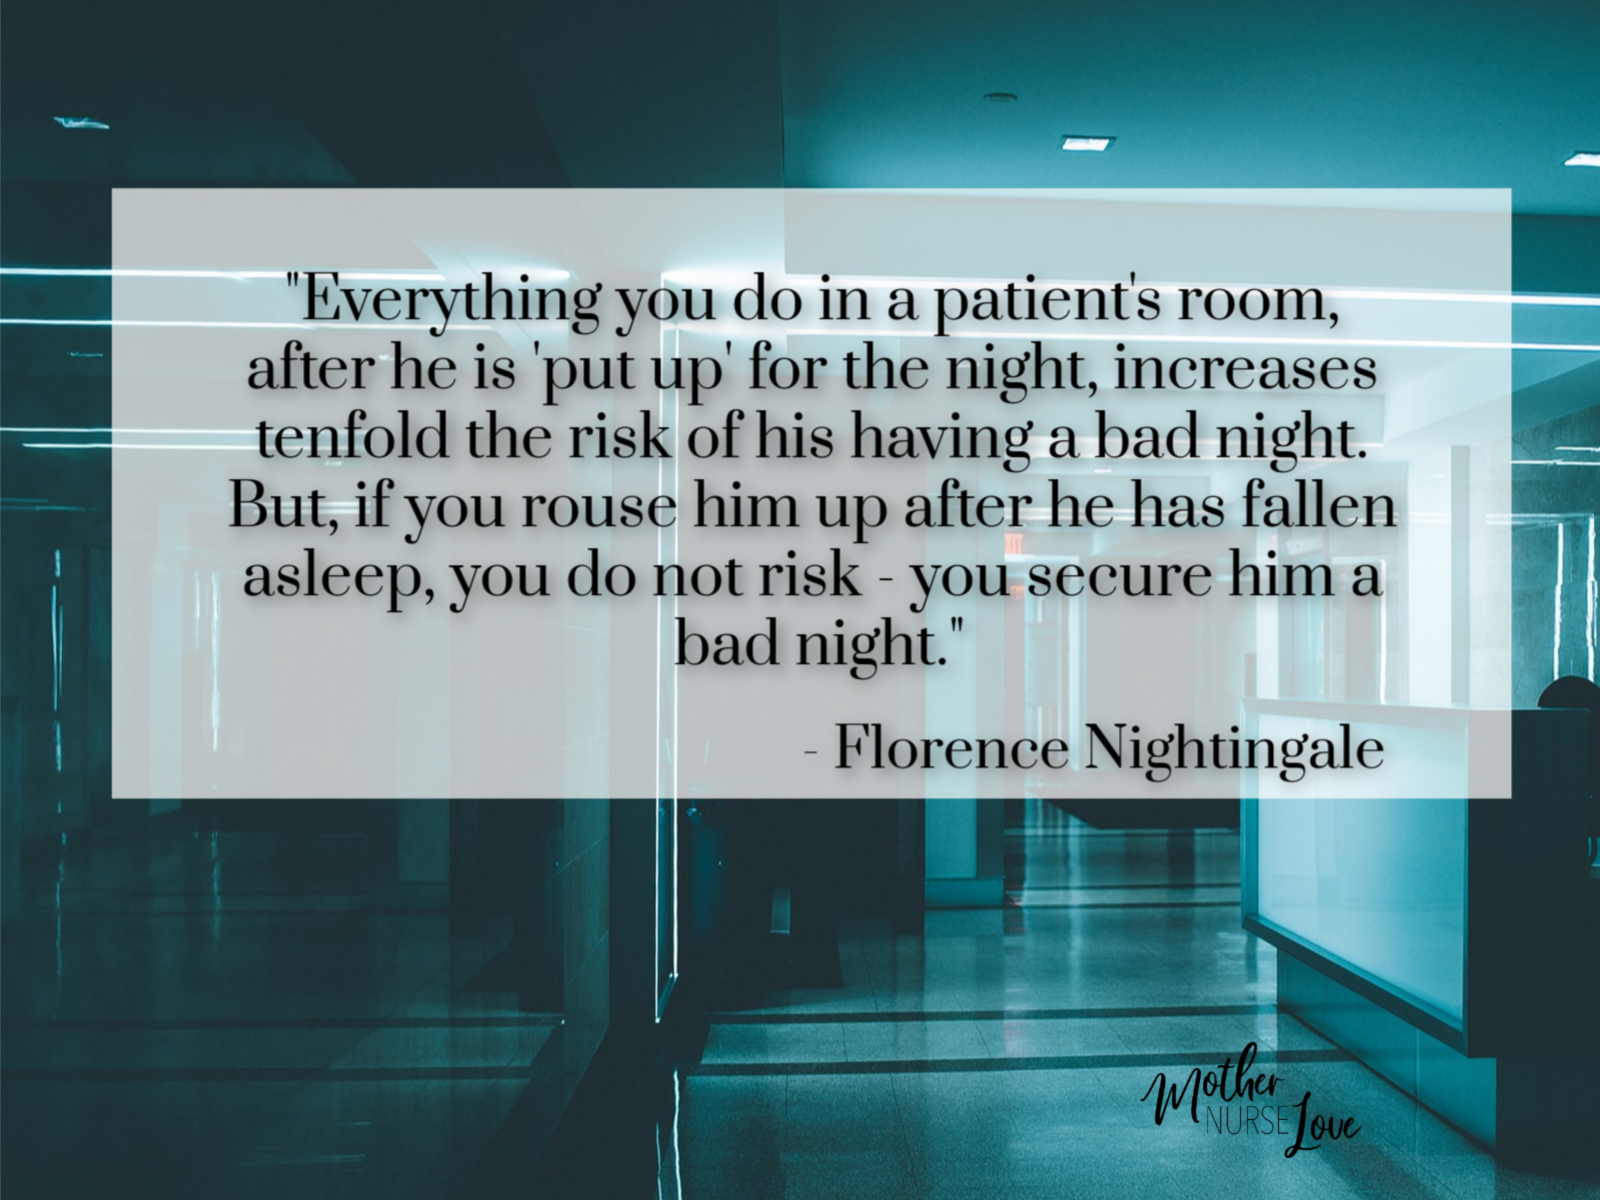 Famous quotes by Florence Nightingale